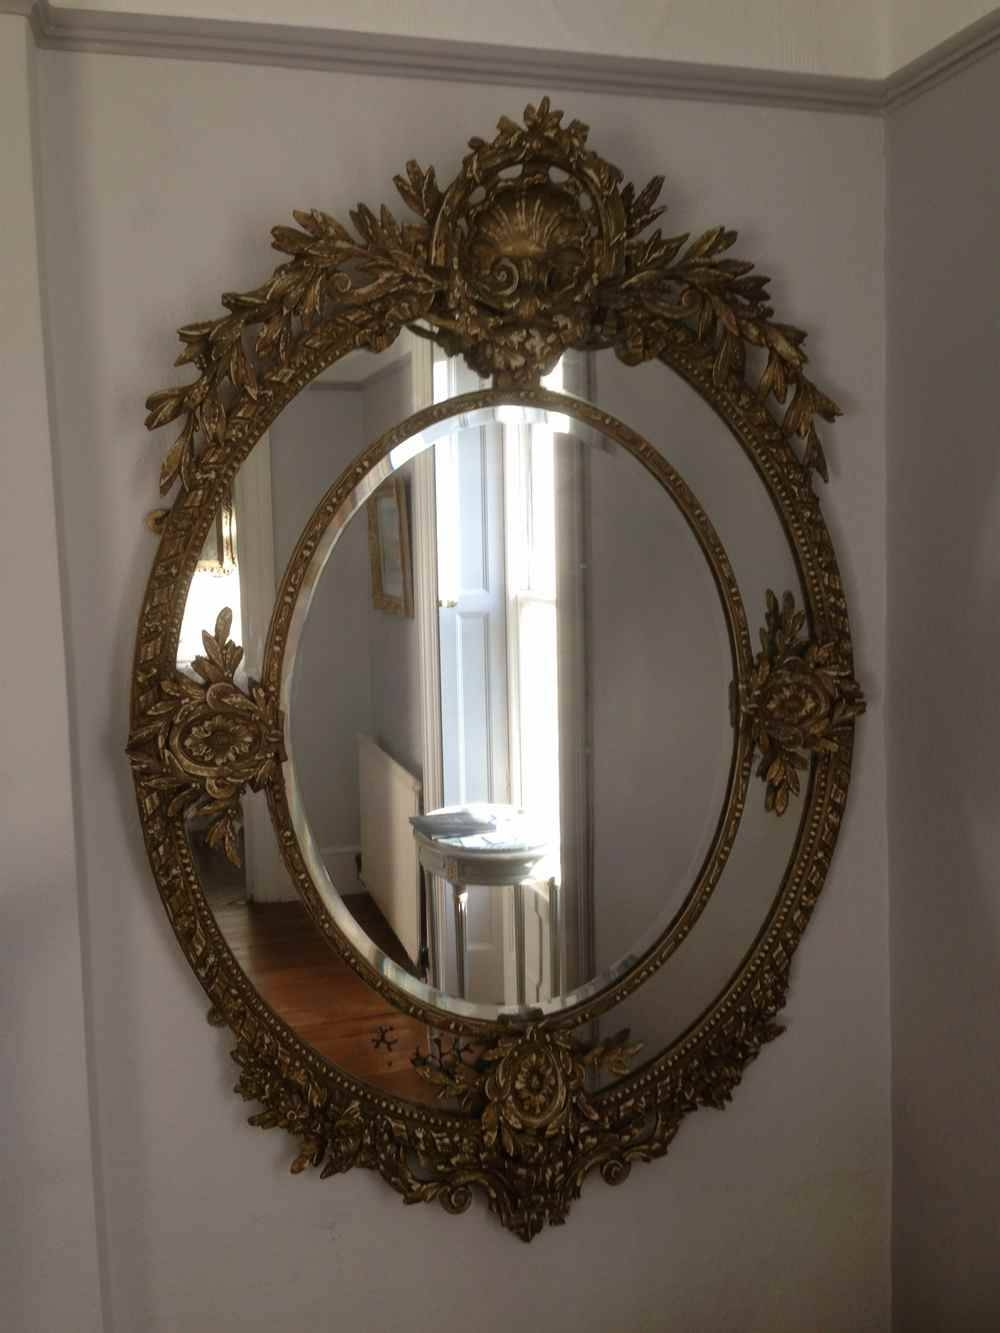 A Wonderful Large Antique 19Th Century French Carved Wood Oval intended for Large Ornate Wall Mirrors (Image 2 of 15)